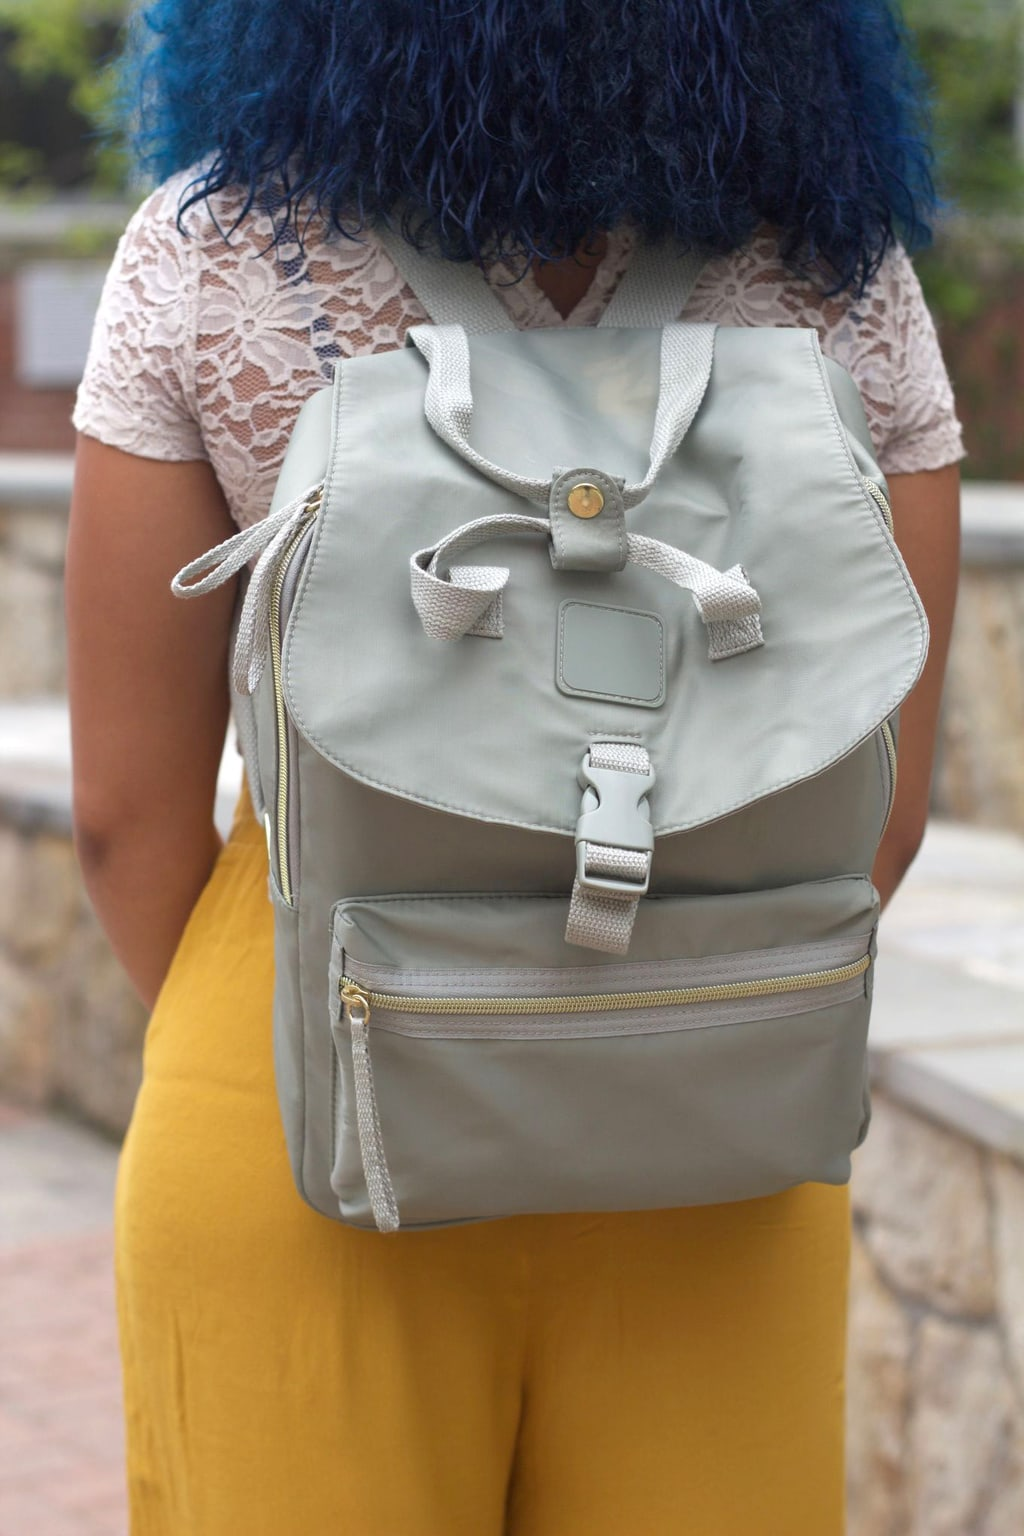 This University of Bridgeport student's fashion forward light grey backpack is trimmed with gold zippers and buttons.